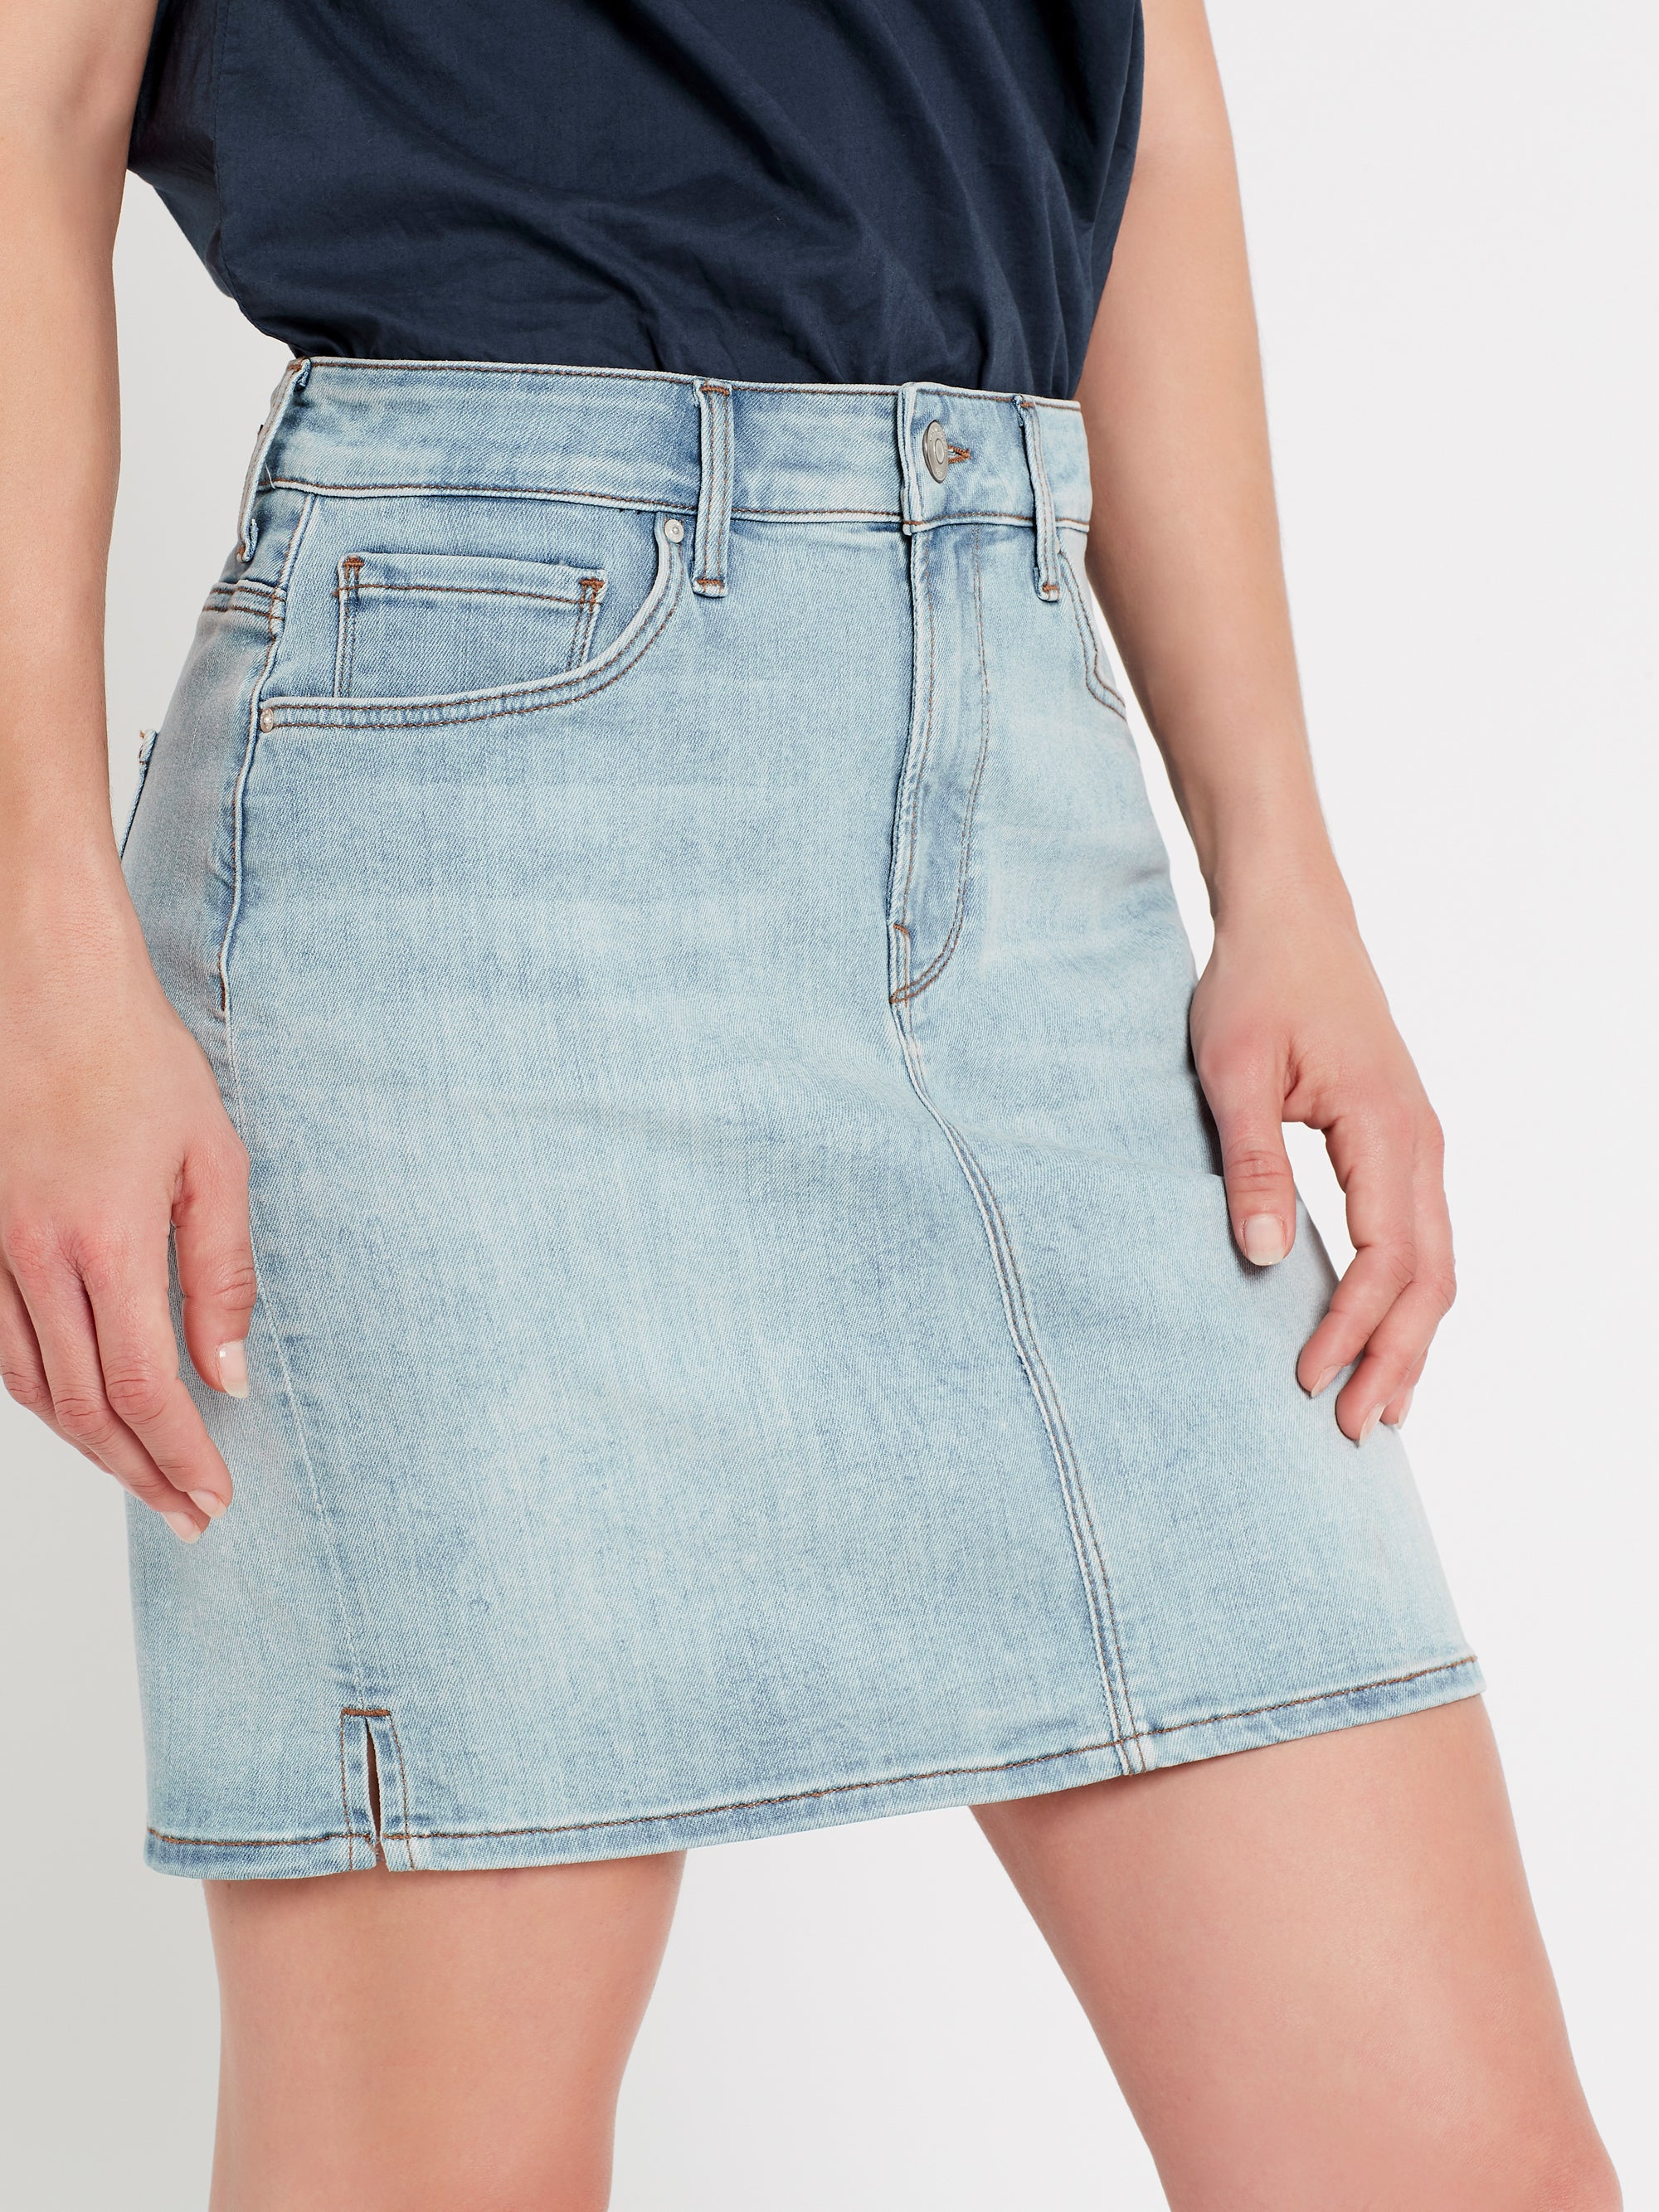 Frida Side Slit A Line Denim Skirt in Bleach Vintage